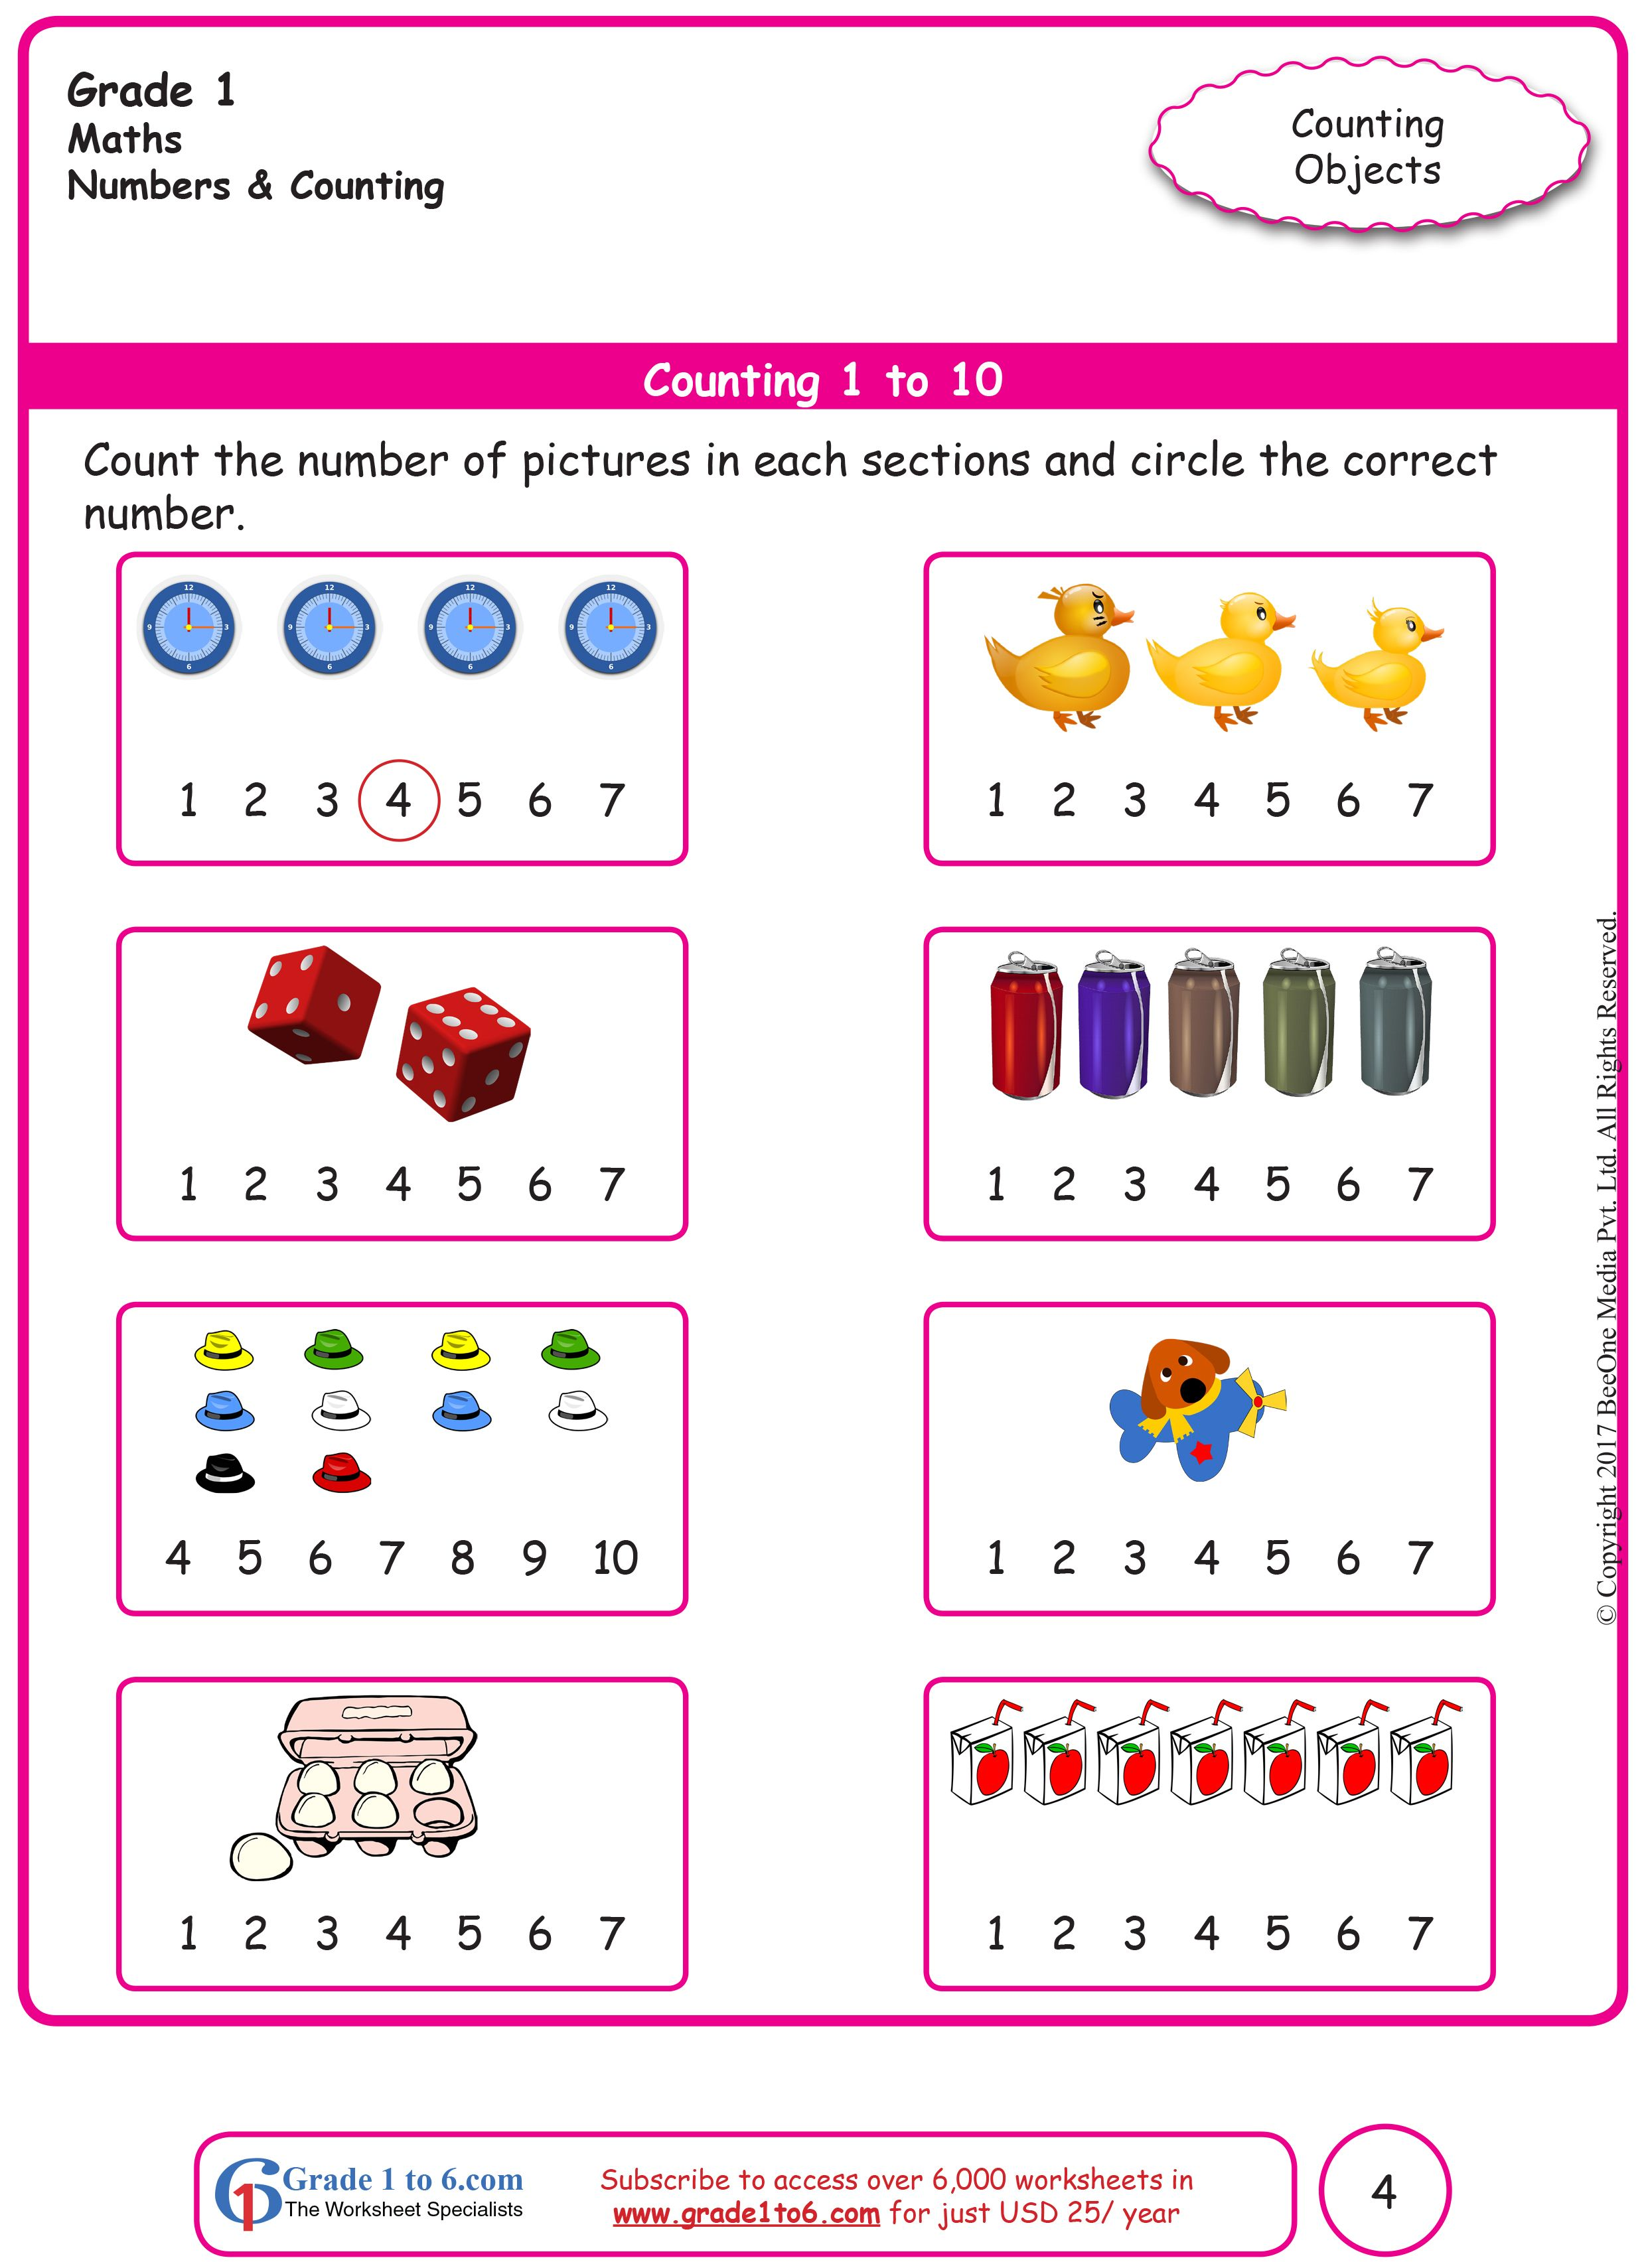 Counting Objects Worksheets Grade 1 Math   Kids math worksheets [ 3418 x 2480 Pixel ]